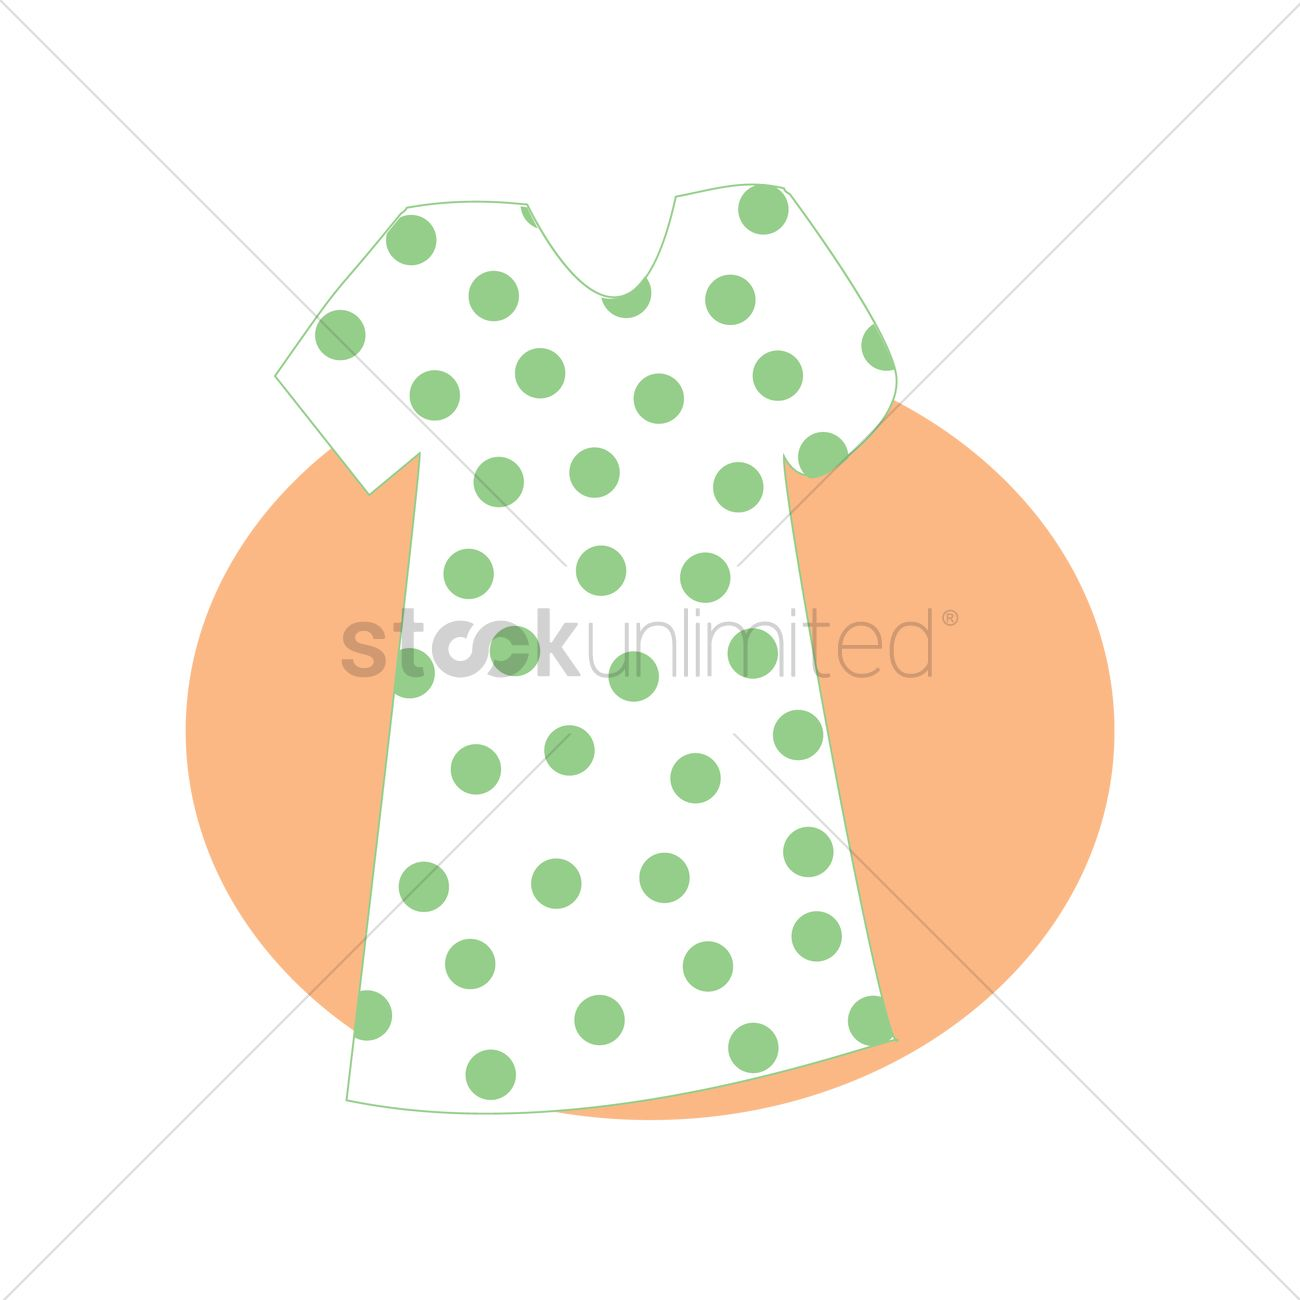 Hospital gown Vector Image - 1303167 | StockUnlimited